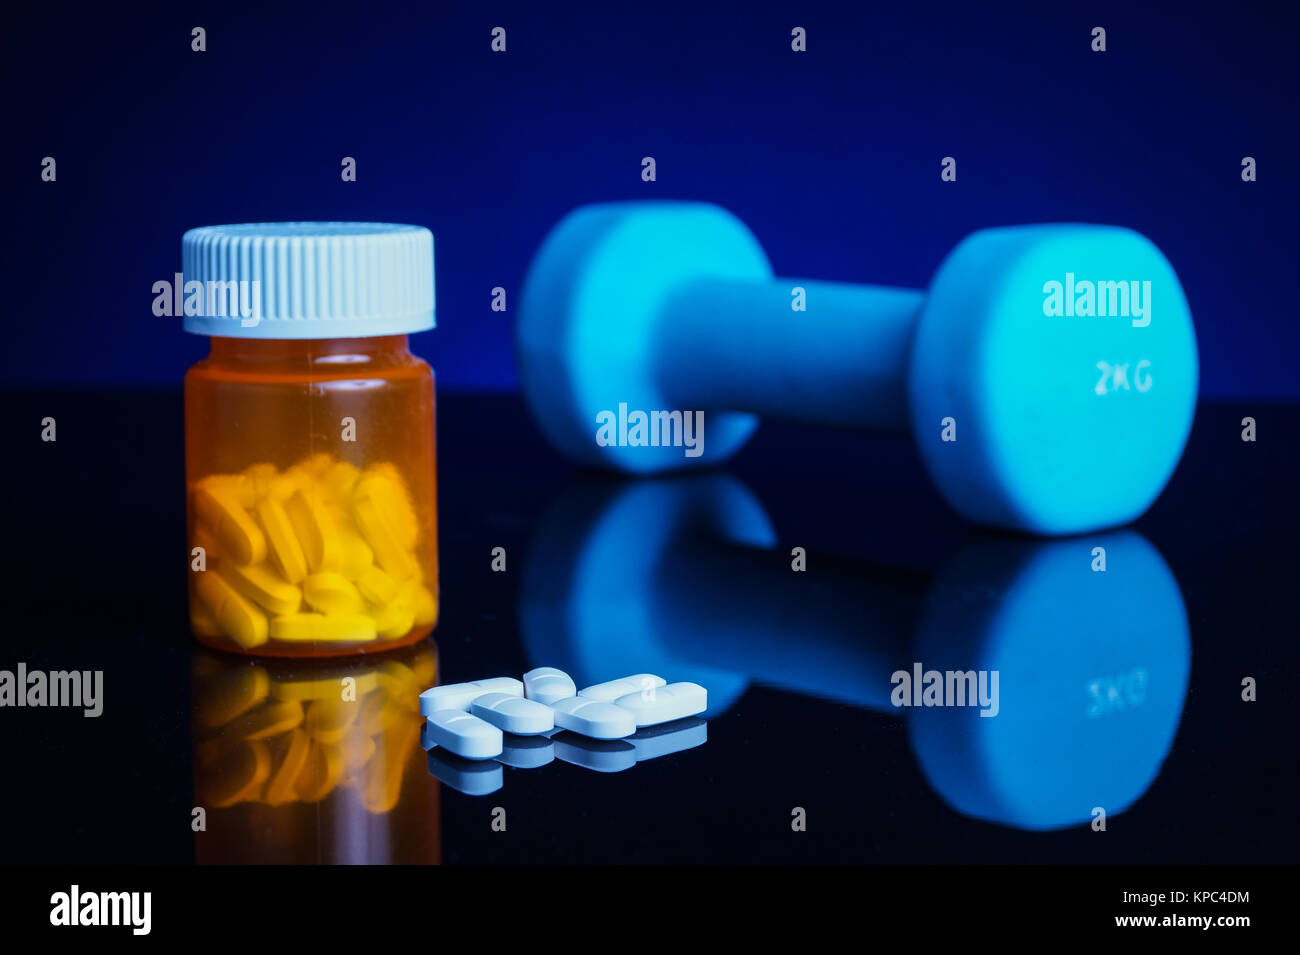 Dumbell and tablets - Stock Image